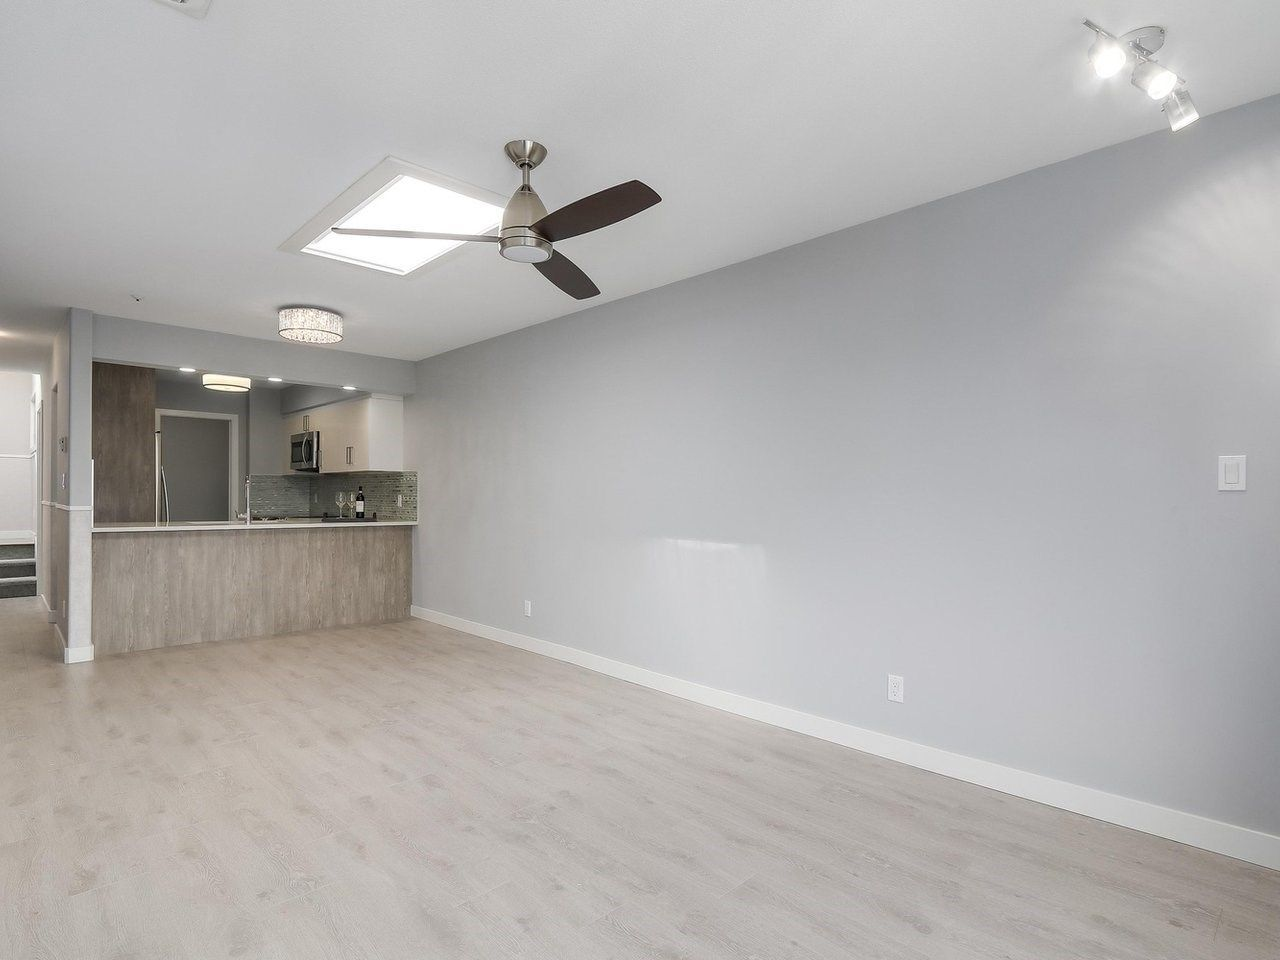 """Main Photo: 312 4893 CLARENDON Street in Vancouver: Collingwood VE Condo for sale in """"CLARENDON PLACE"""" (Vancouver East)  : MLS®# R2216672"""